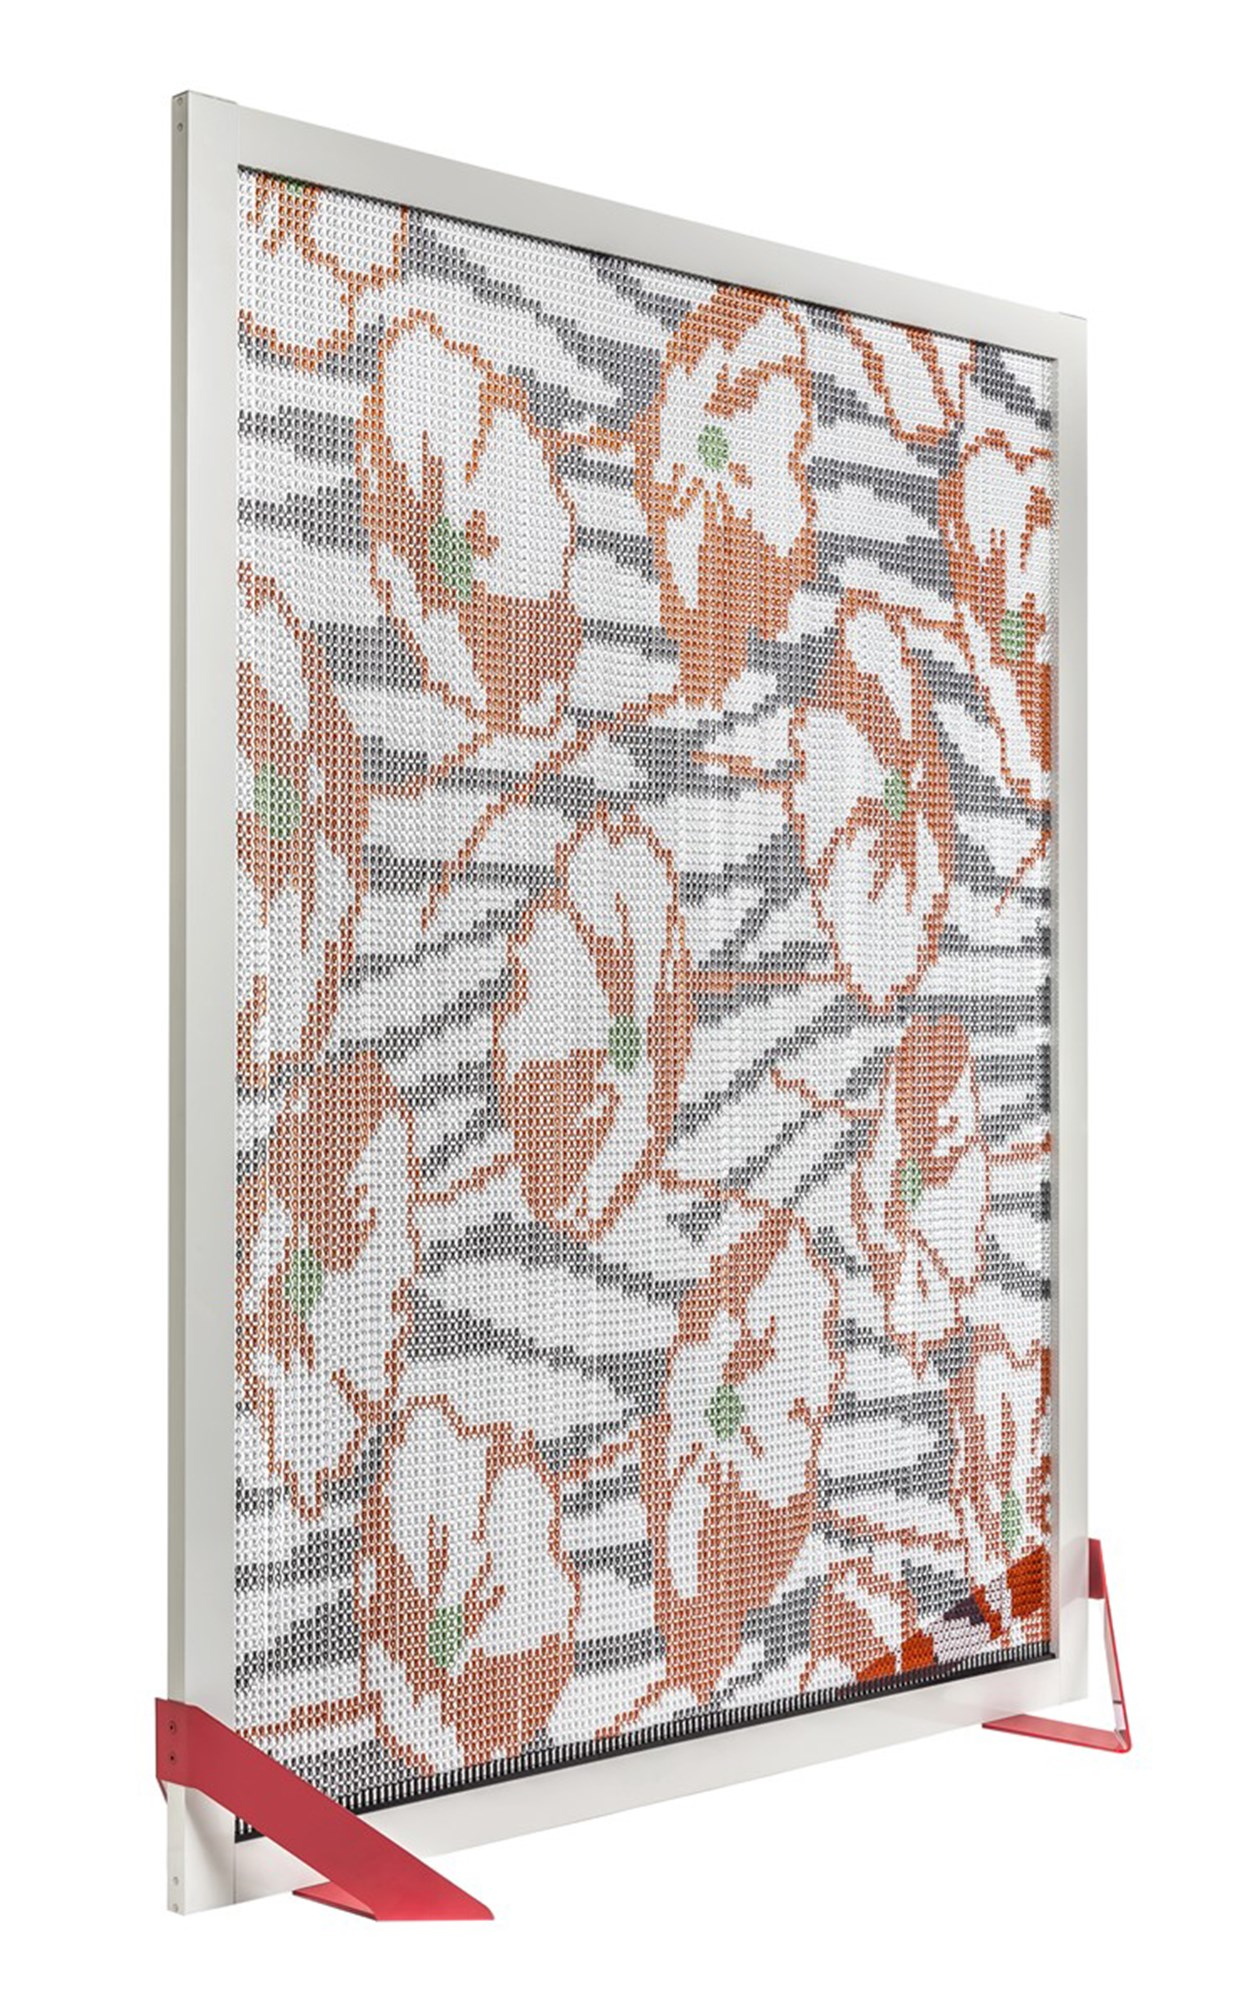 kriskadecor-Barcelona-Screen-Divider Flowers-L-grey.jpg